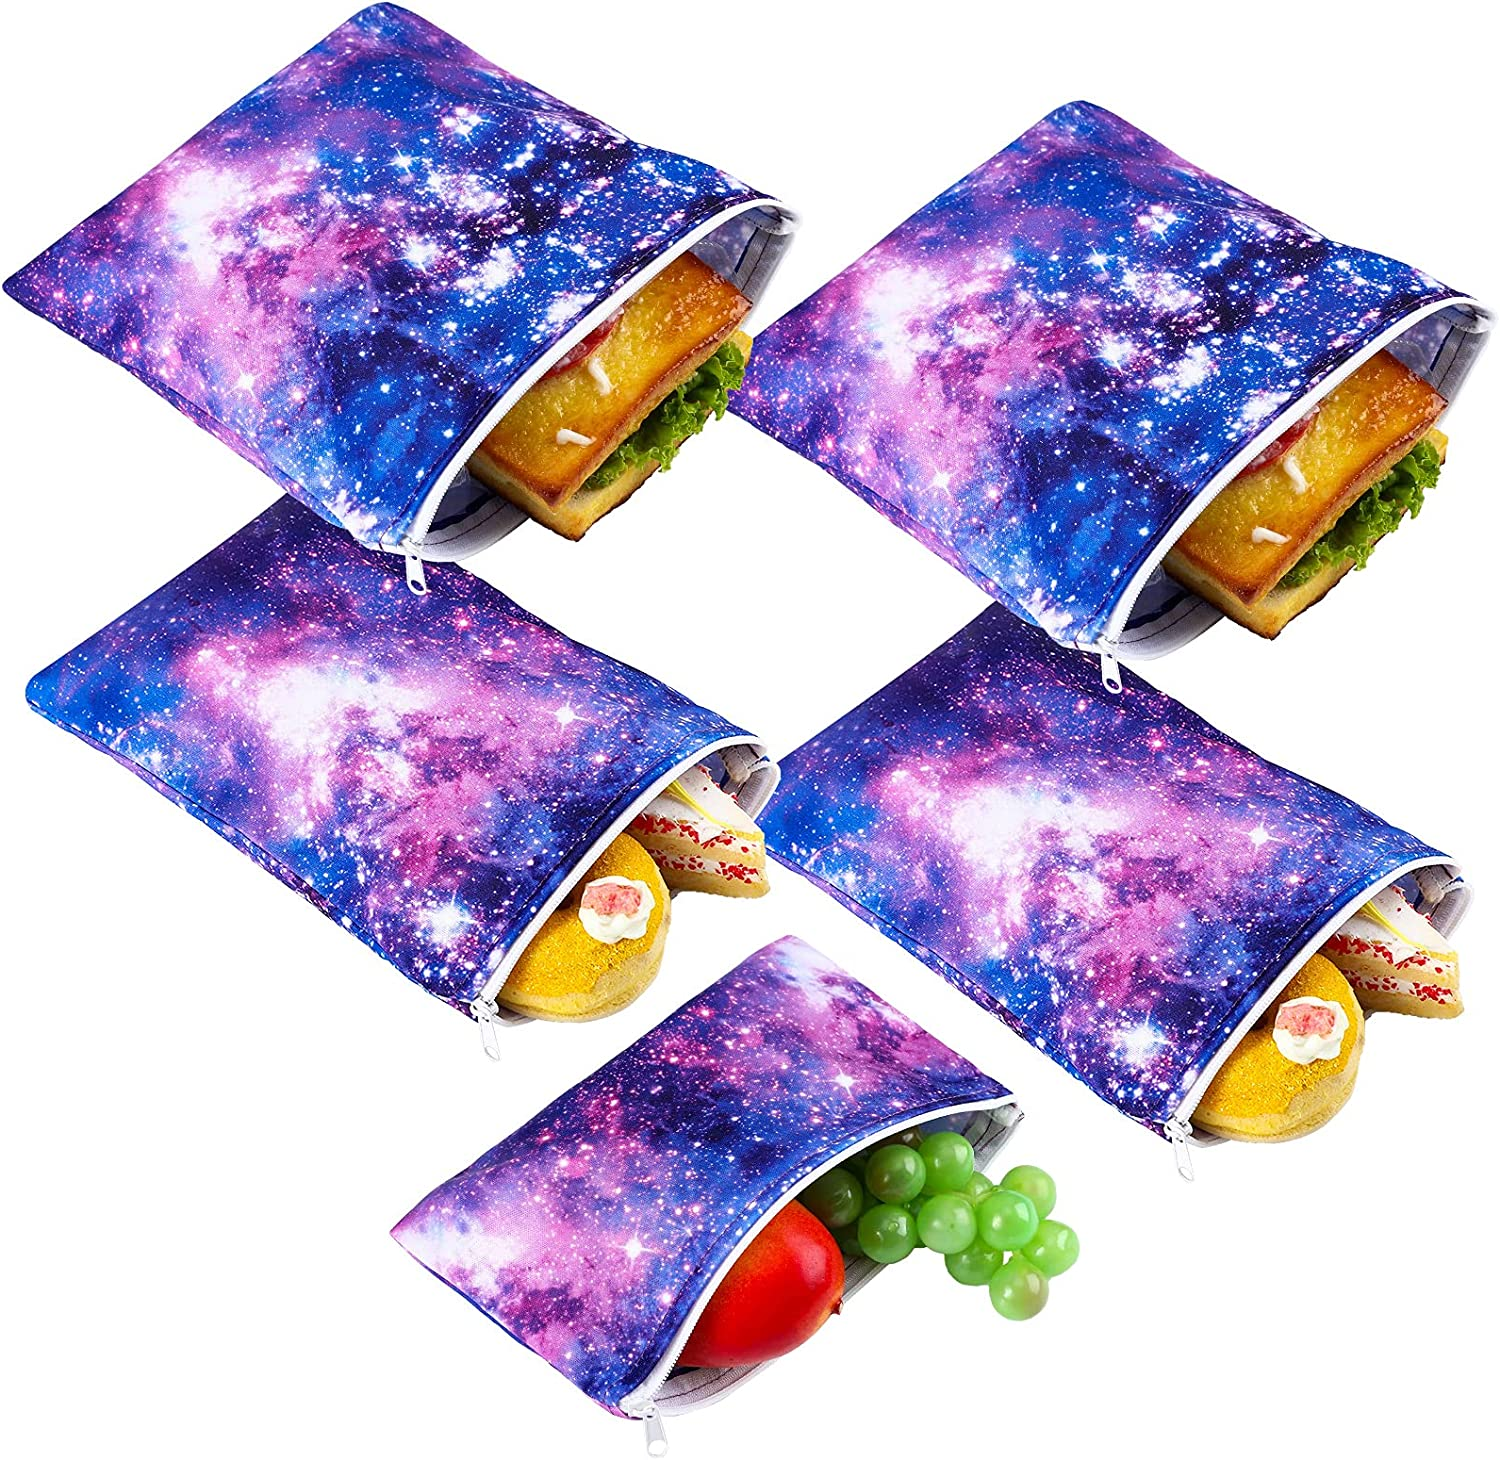 5 Pieces Reusable Sandwich and Snack Bags Safe, Snack Bags with Zipper for Store Preserves, Snacks and Sandwiches, with 2 Large 2 Medium and 1 Small Bags (Galaxy Loop Pattern)